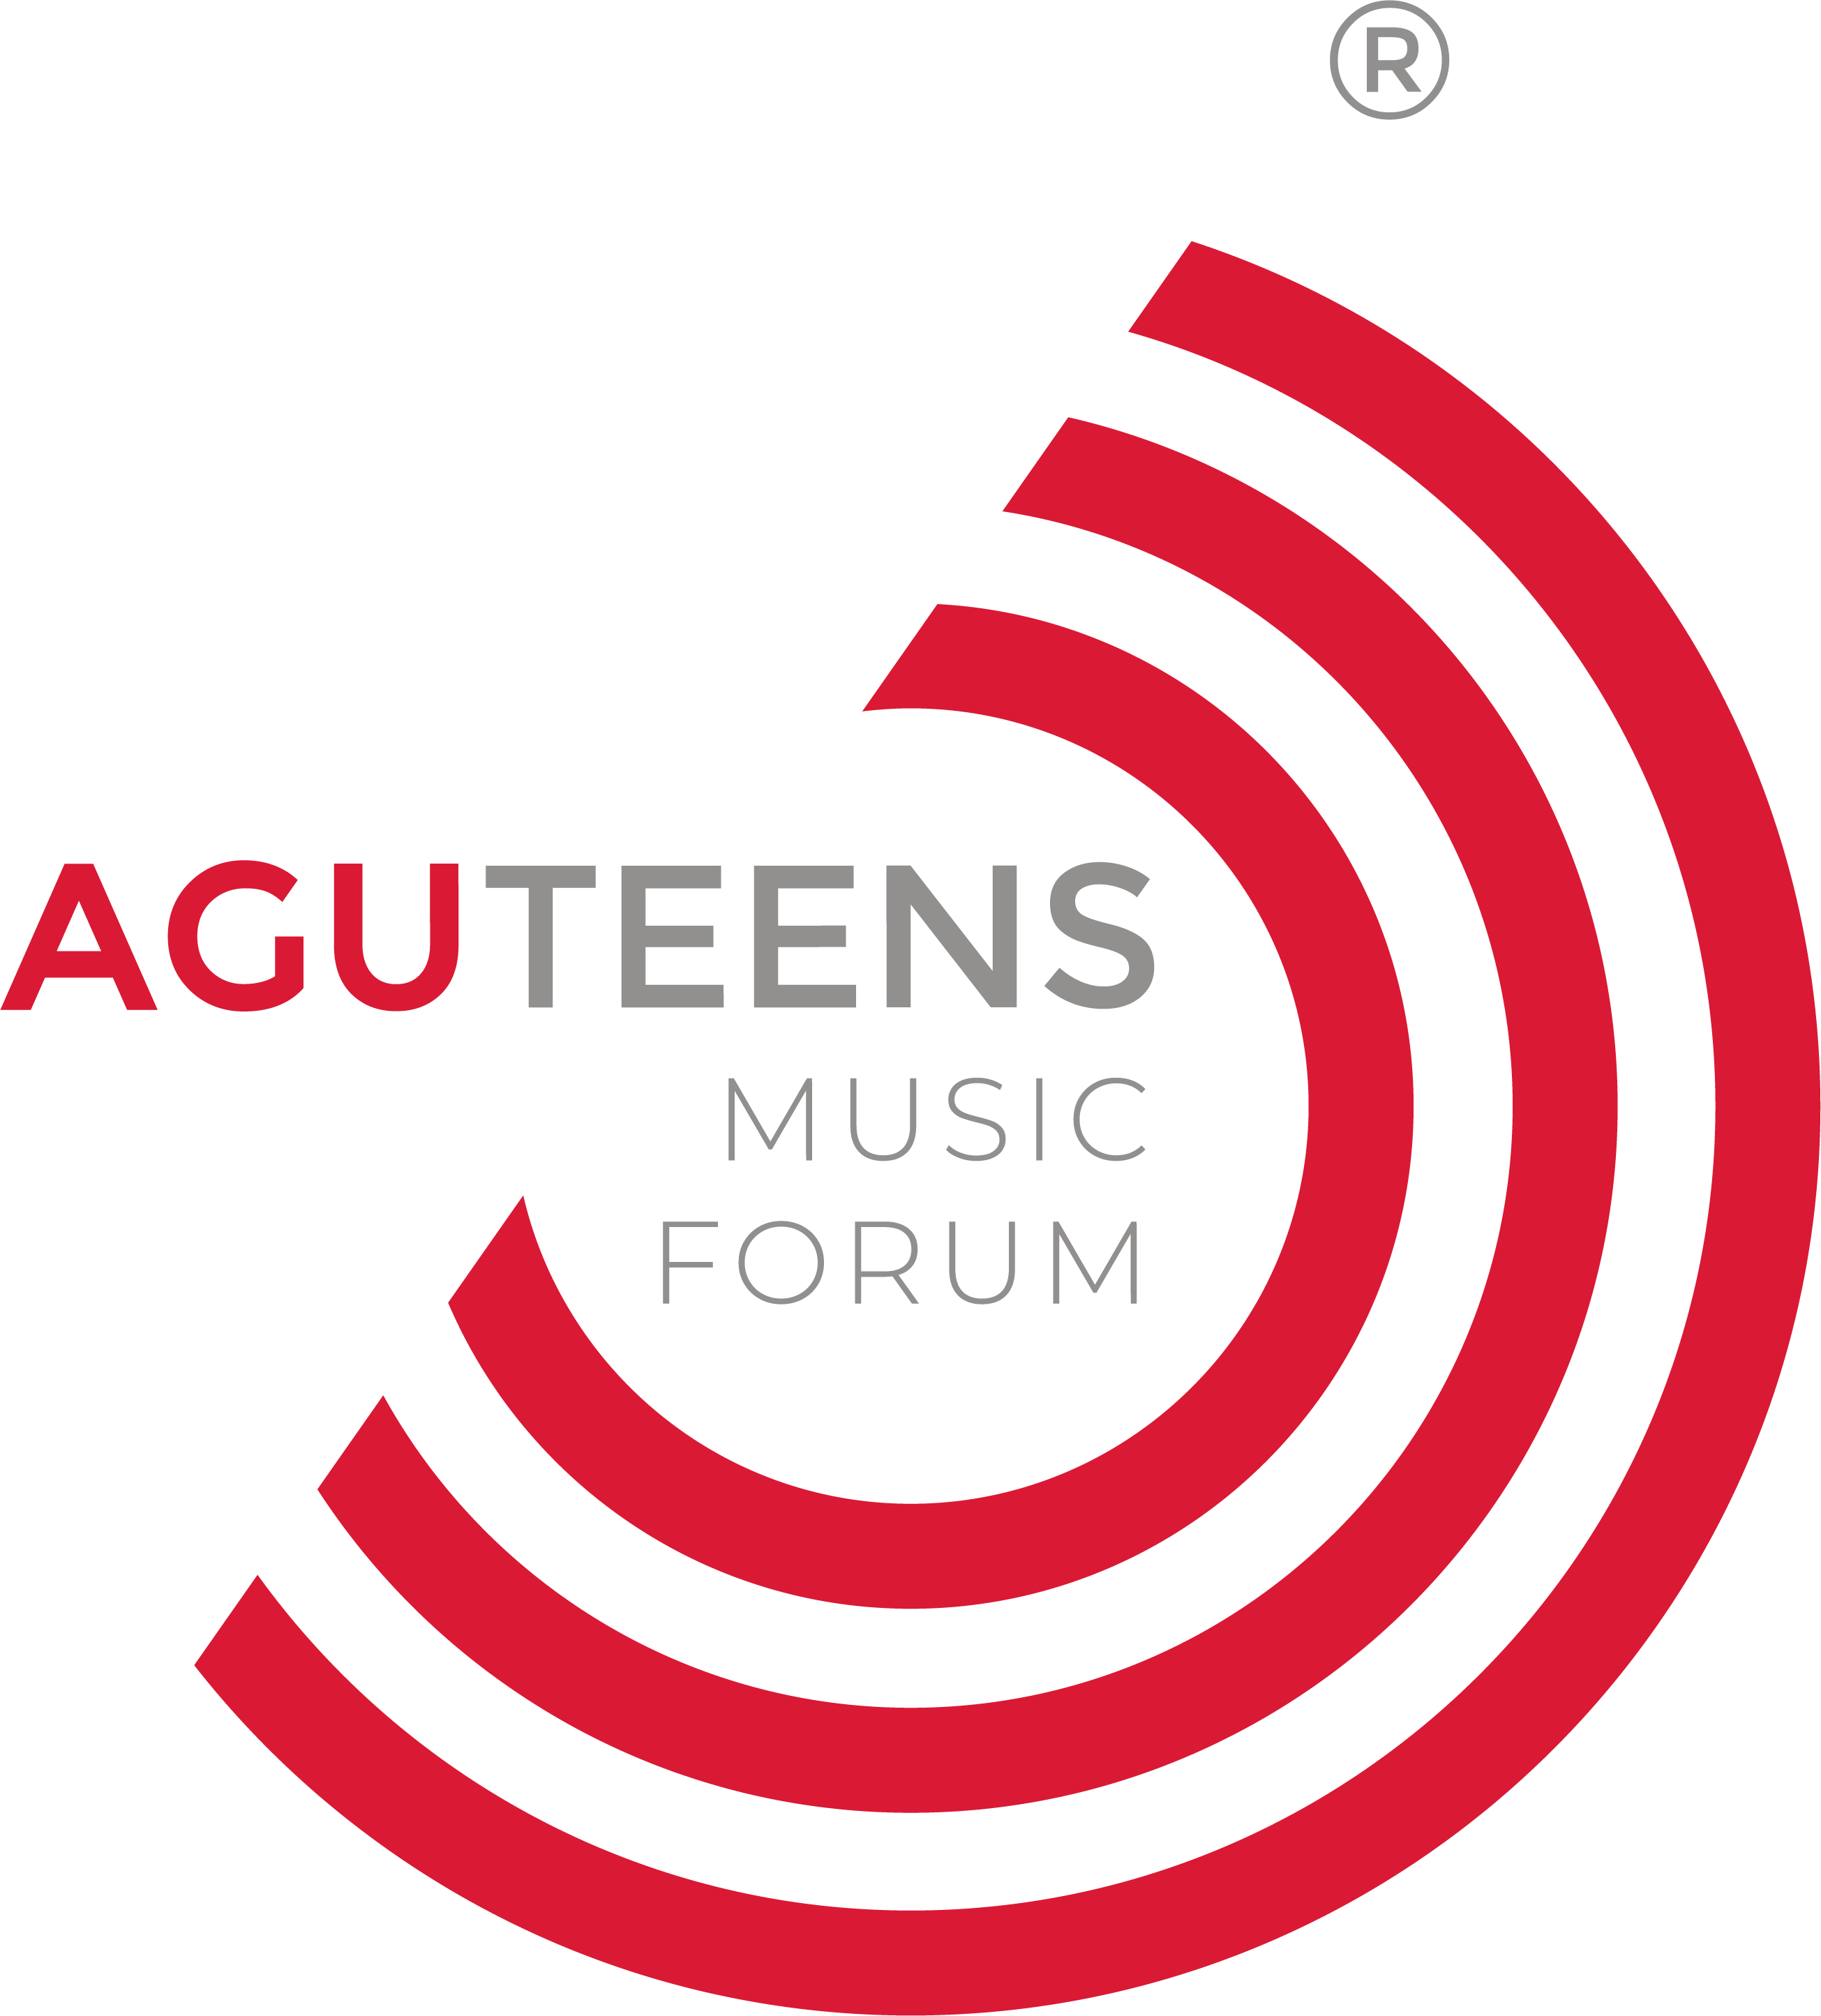 AguTeens Music Forum